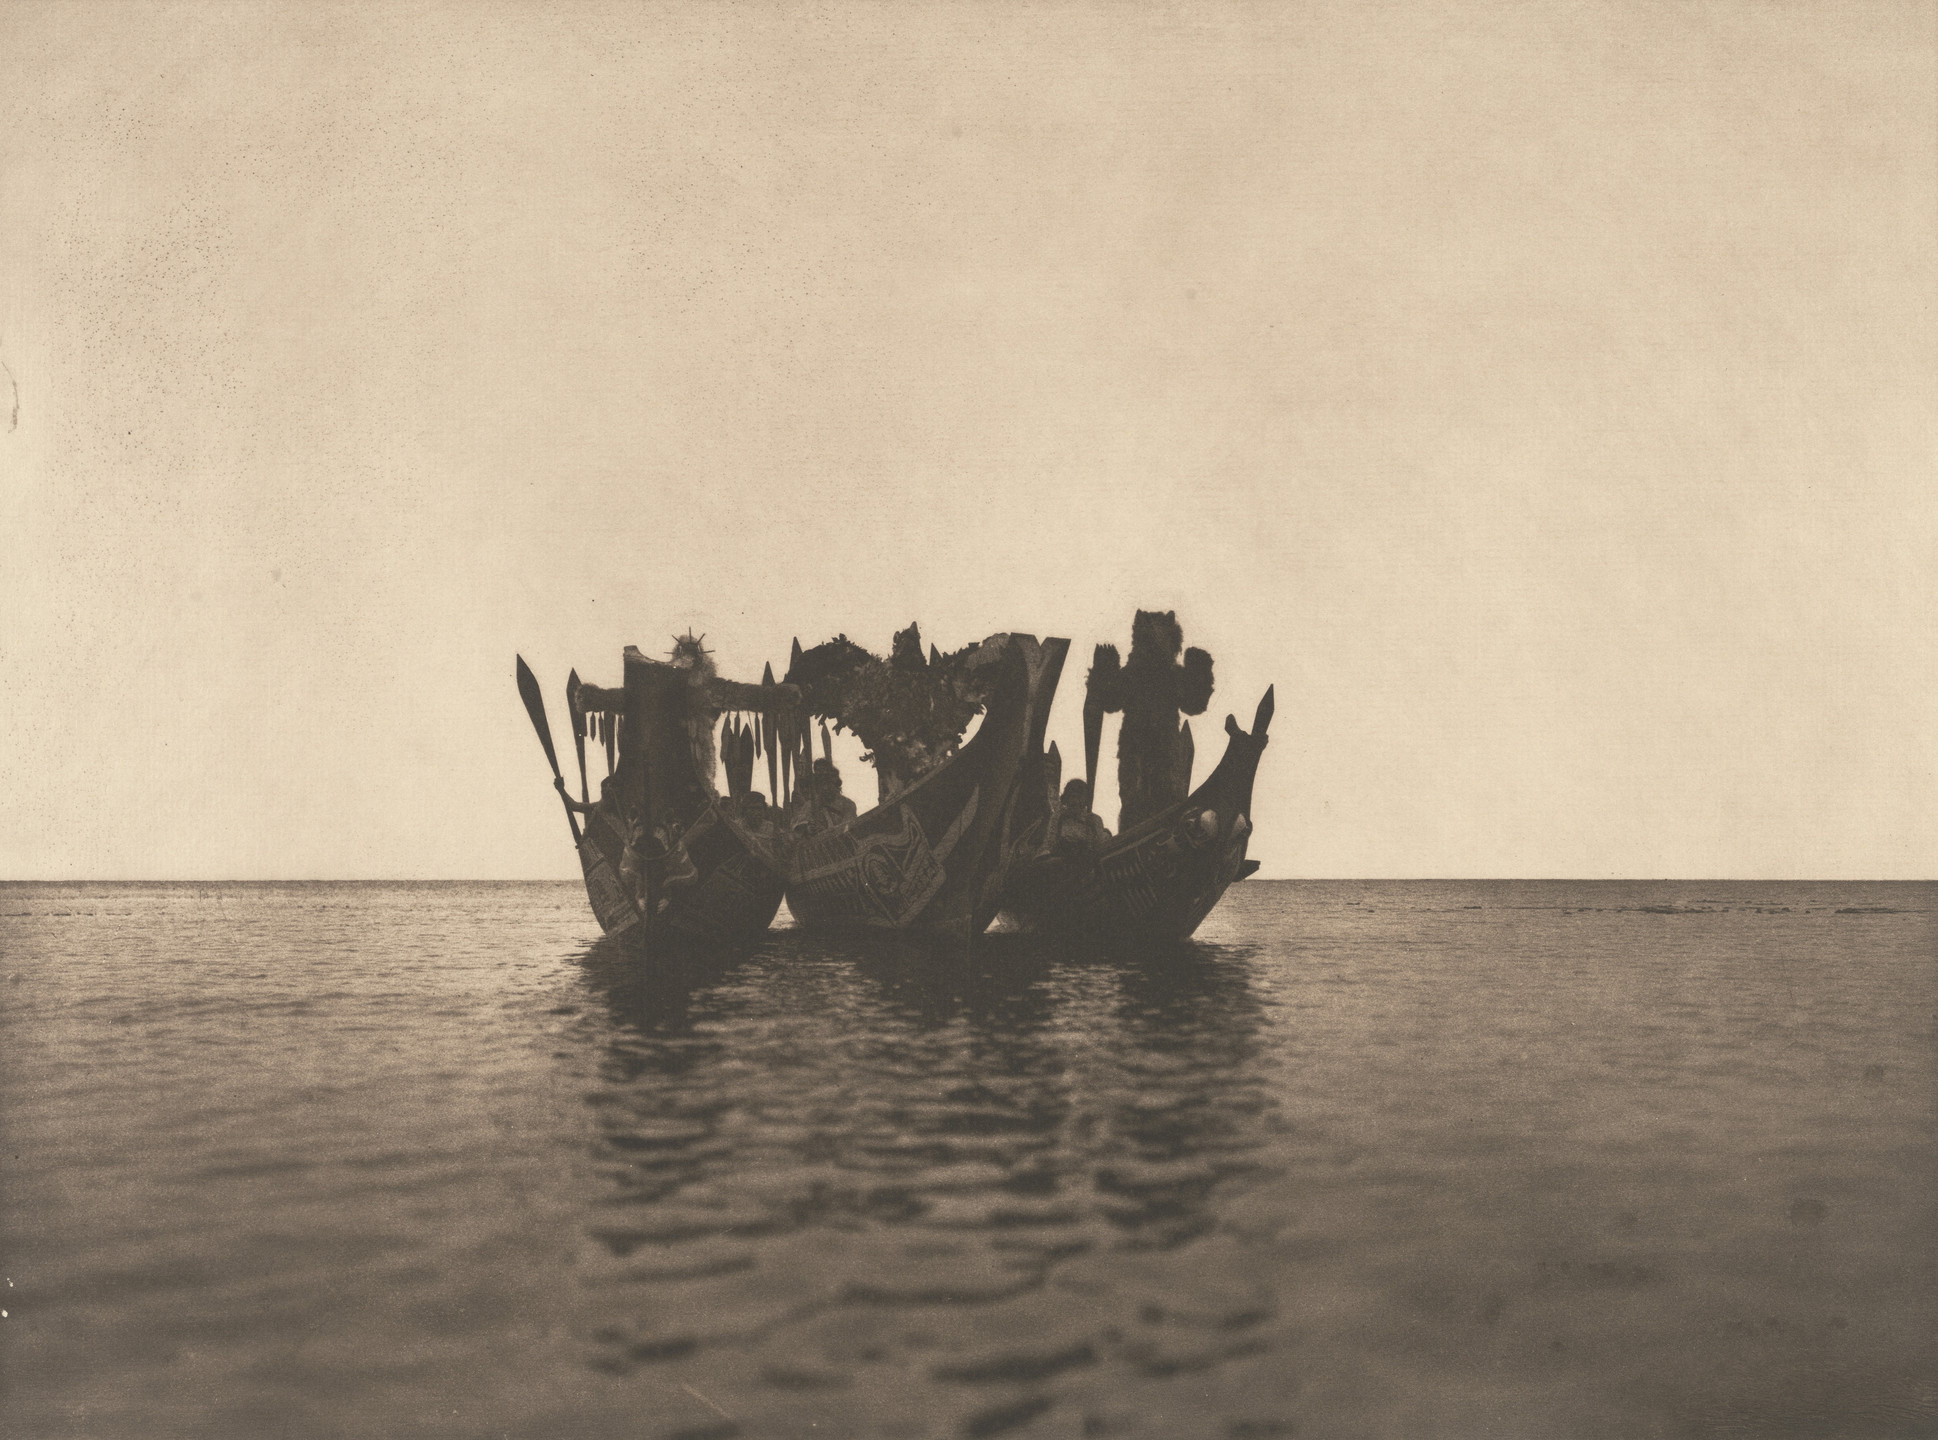 Edward Curtis. Masked Dancers in Canoes, Qagyuhi. 1914